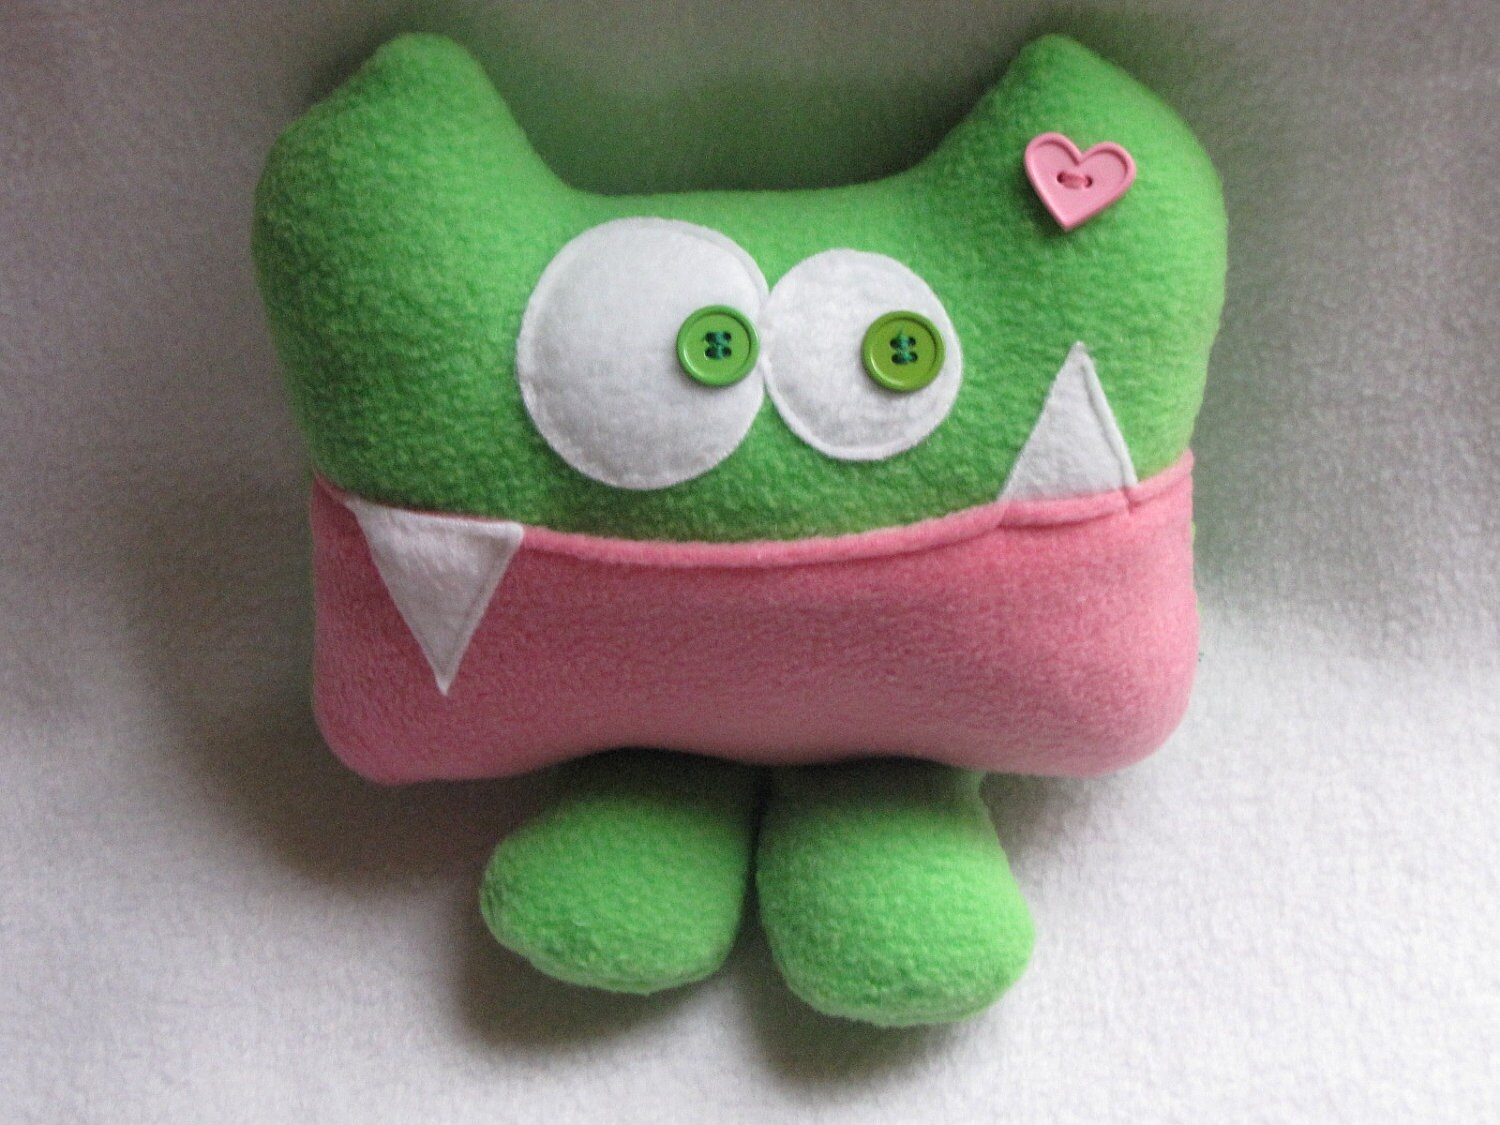 Tooth Fairy Pillow-Miss Abigail Applesauce by Kooky Critters - kookycritters